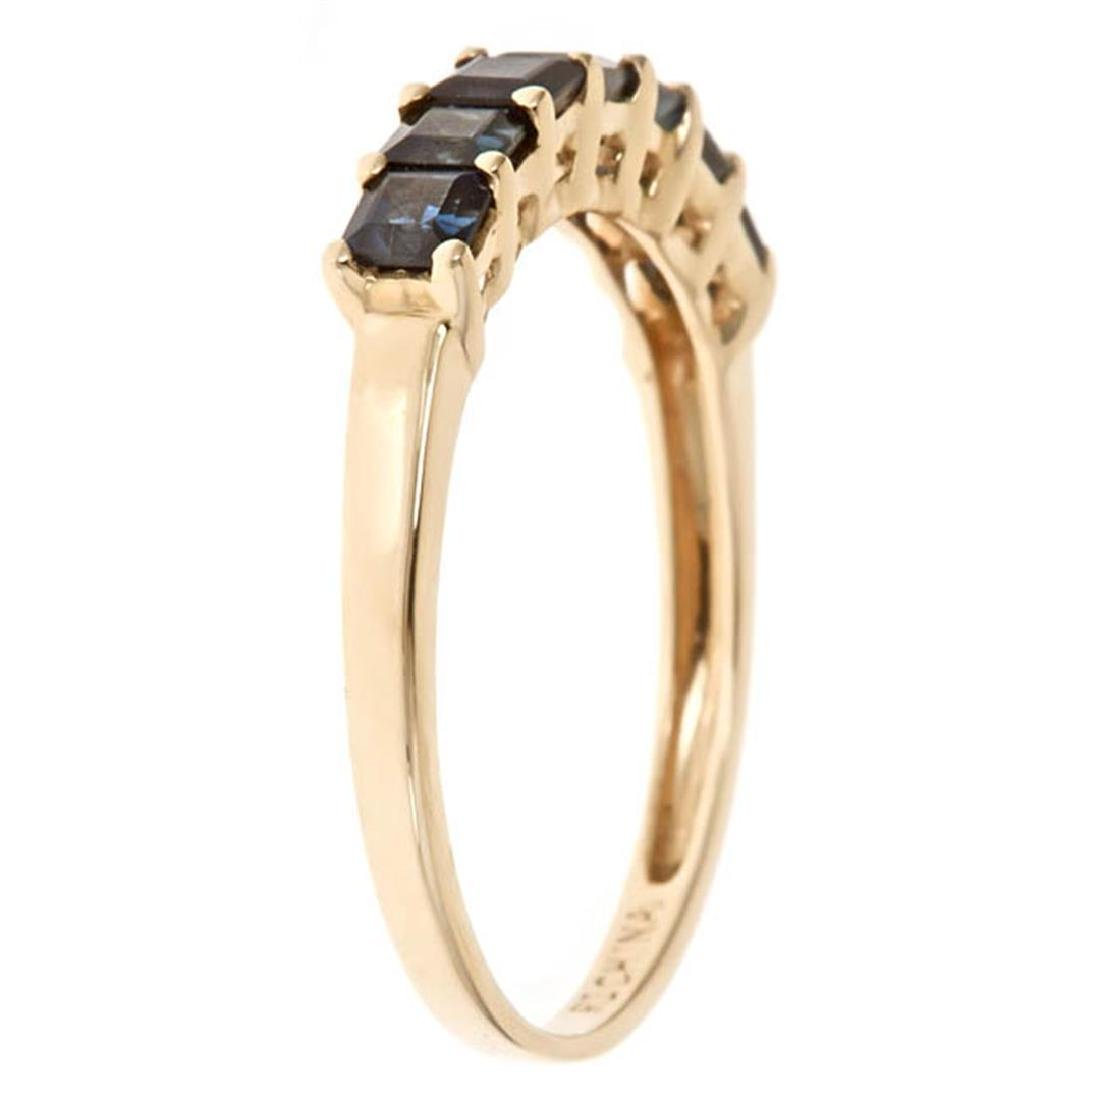 1.33 ctw Sapphire Ring - 14KT Yellow Gold - 2